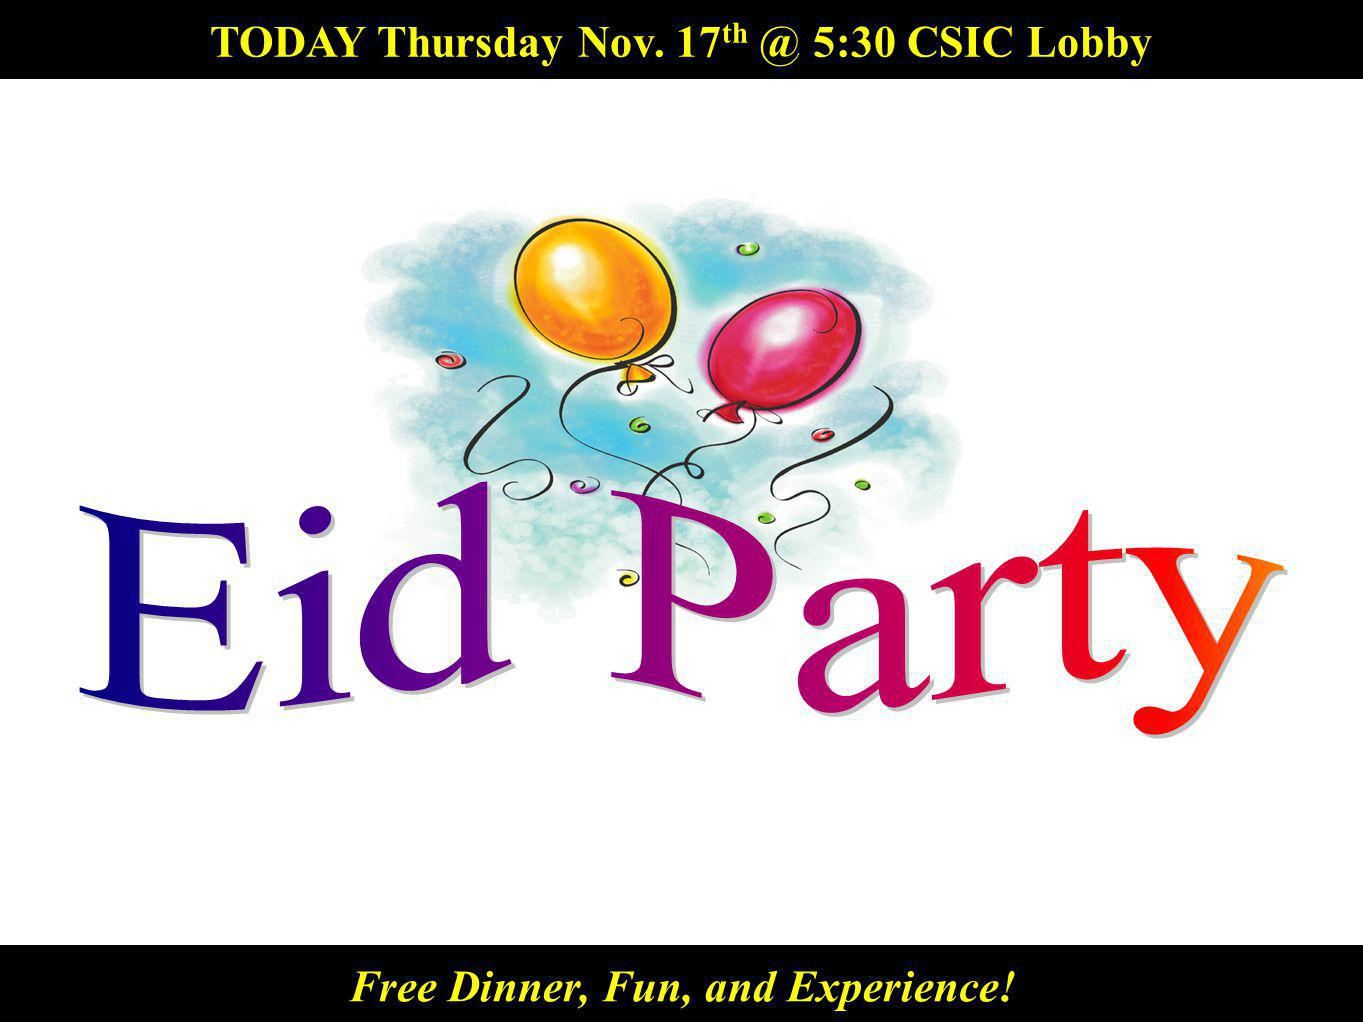 TODAY Thursday Nov. 17 5:30 CSIC Lobby Free Dinner, Fun, and Experience!